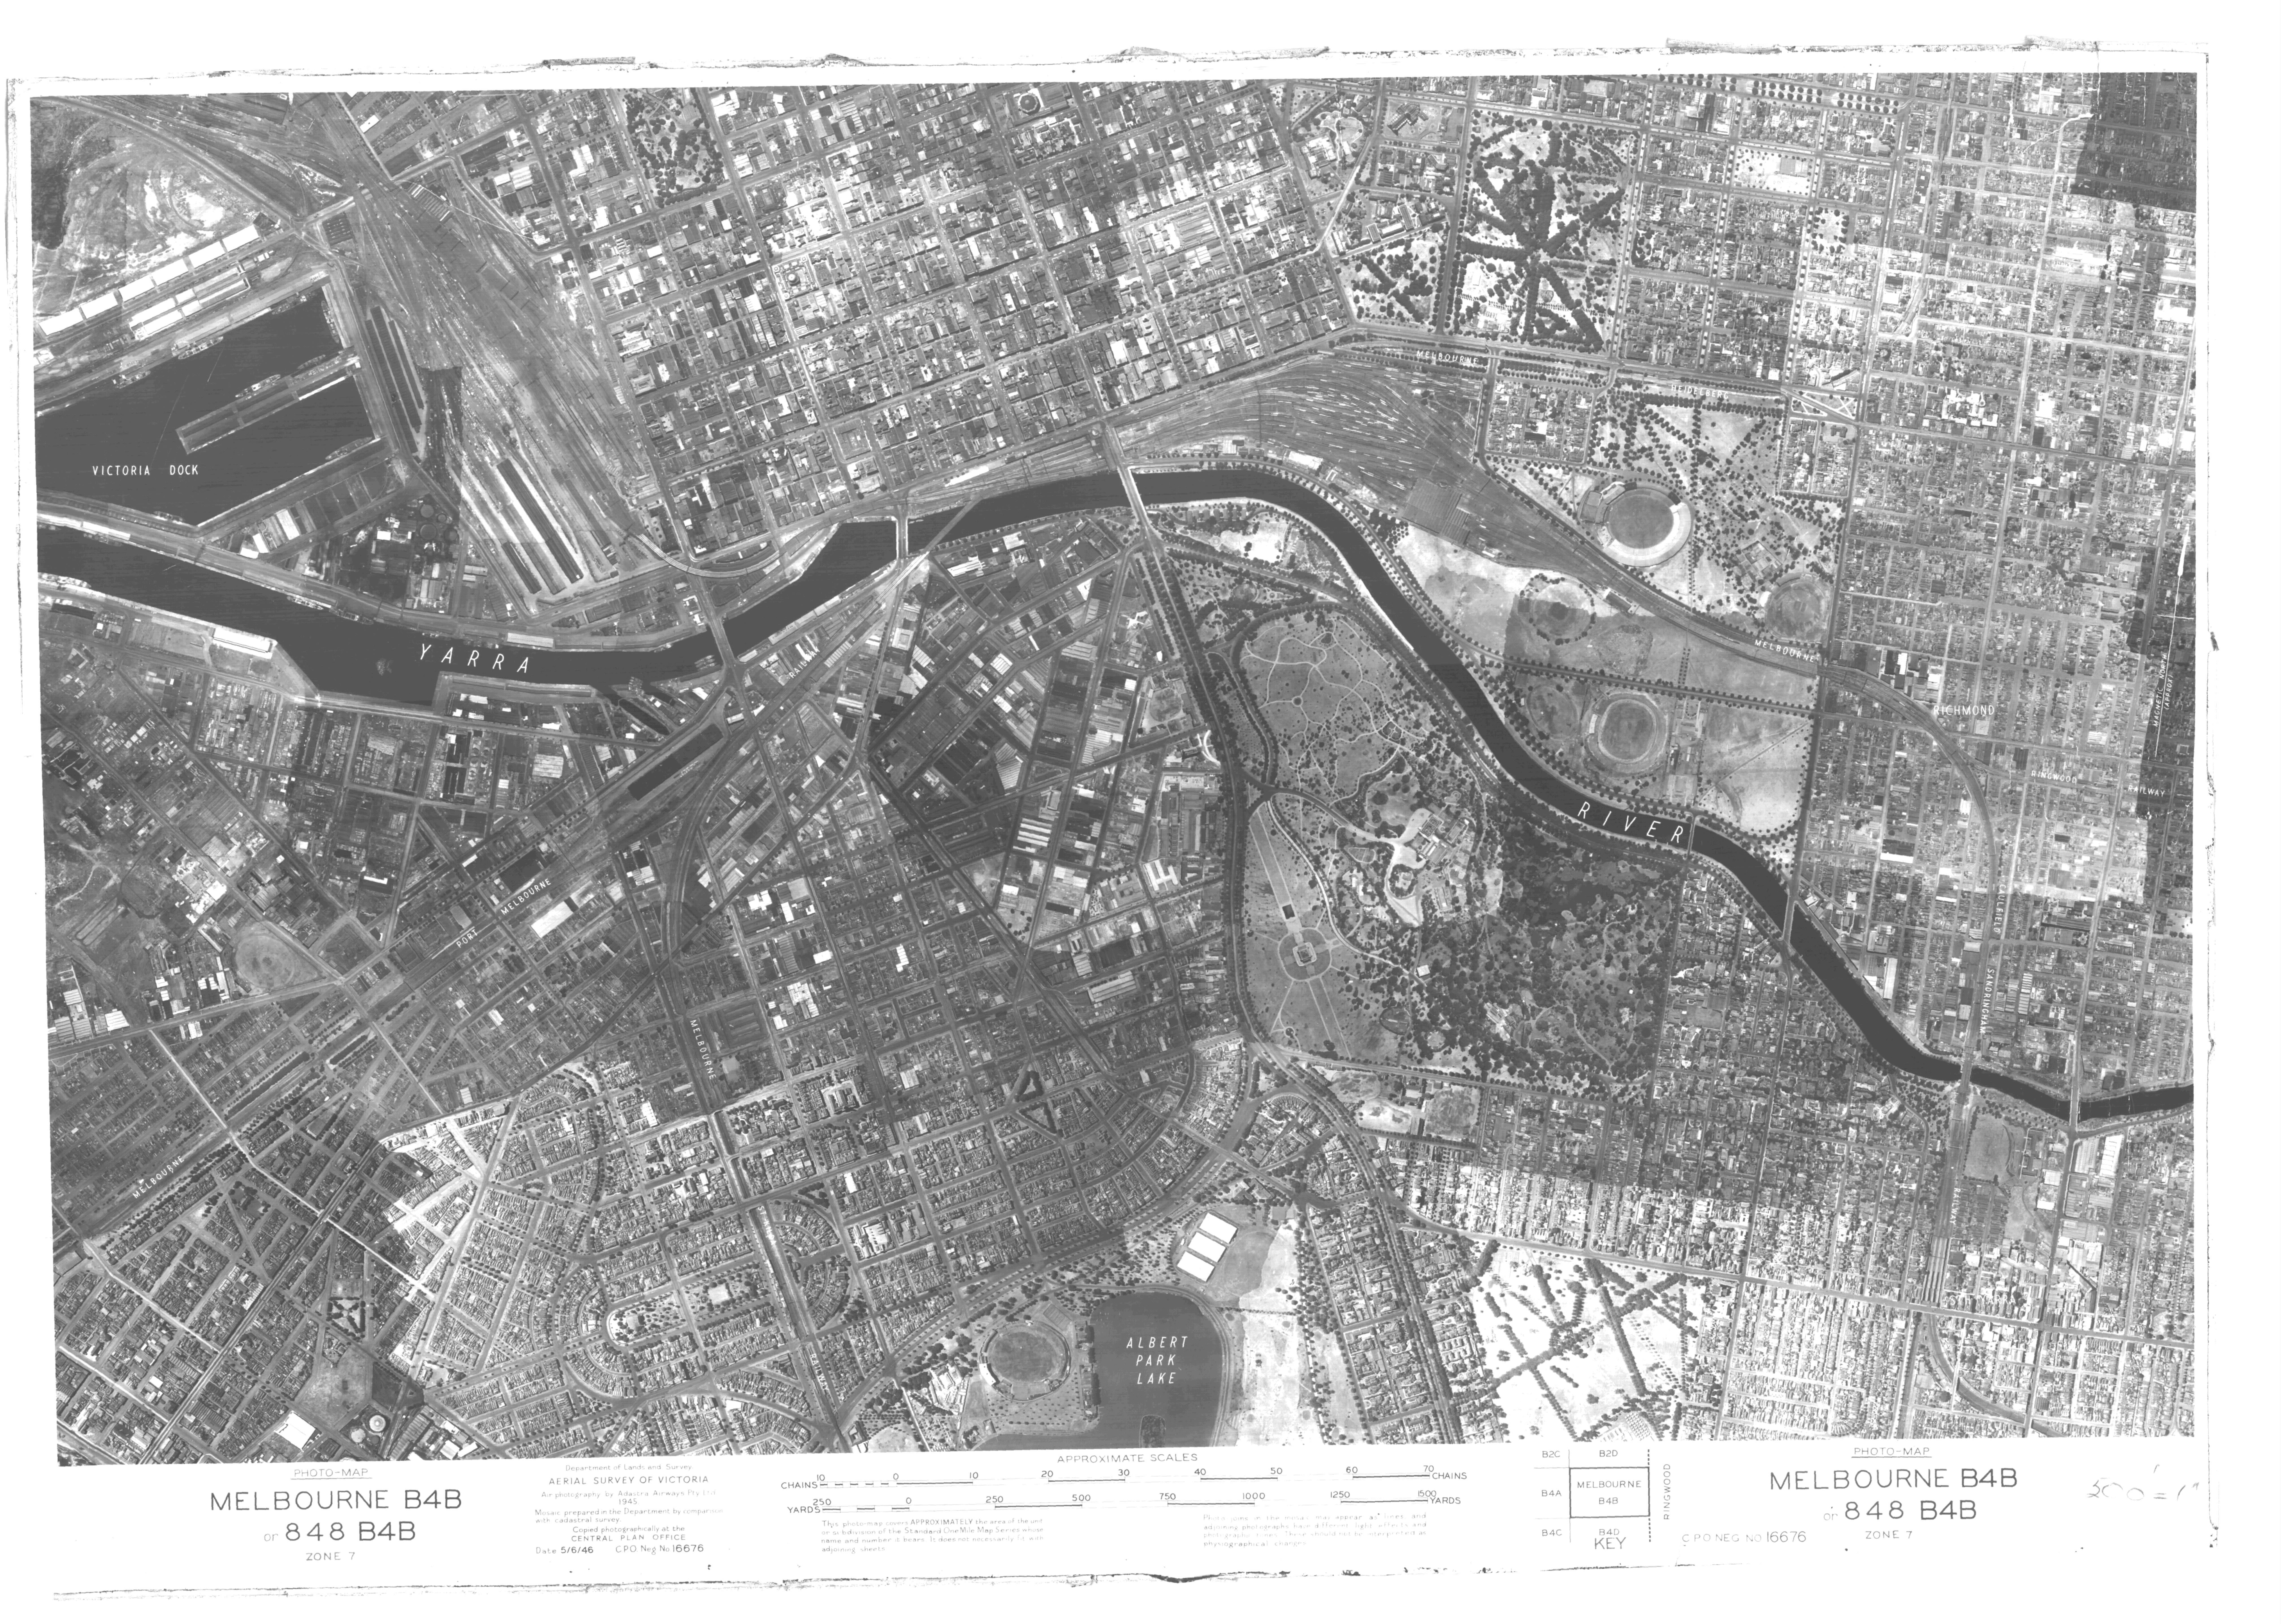 Aerial Map Of Melbourne East Melbourne Historical Society - Historical aerial maps